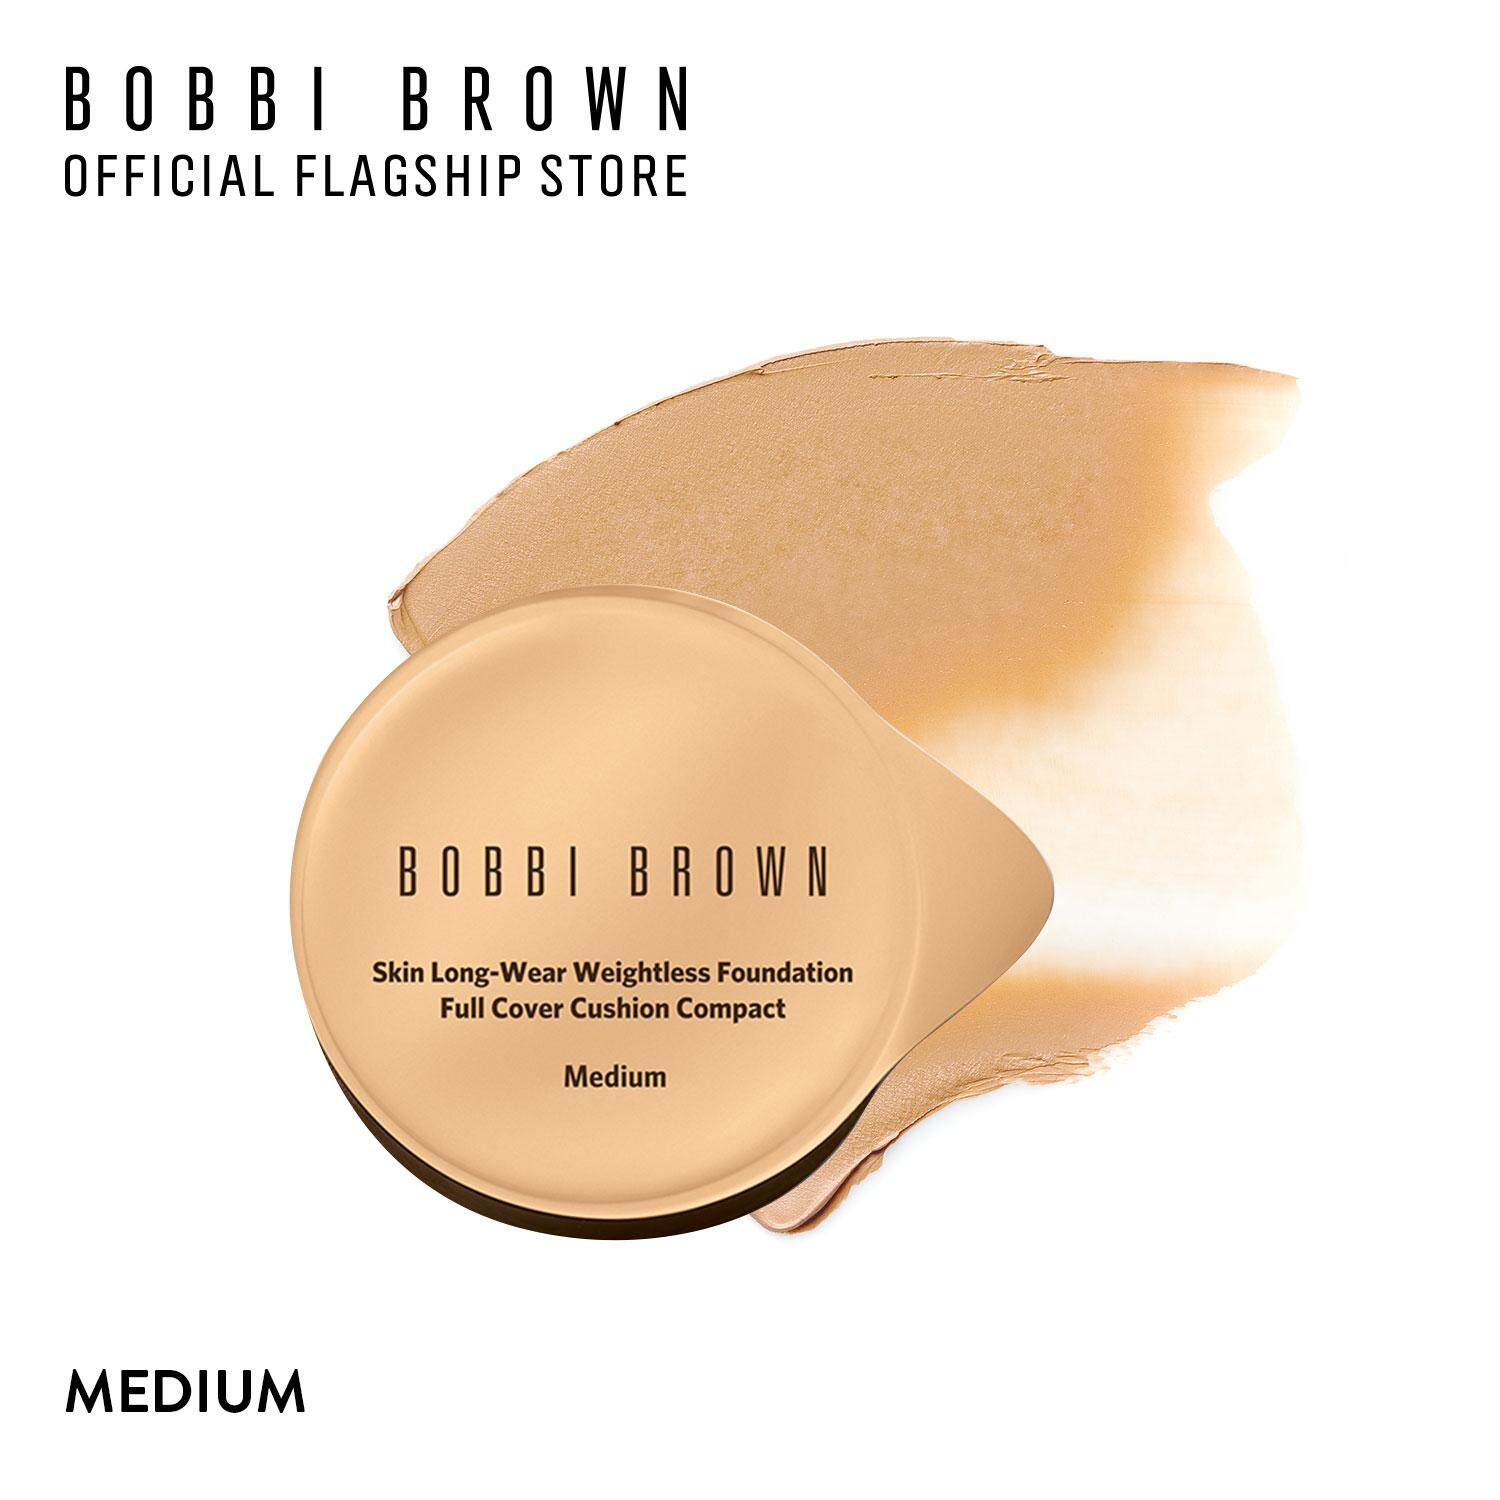 Lõi phấn nền Bobbi Brown Skin Longwear Weightless Foundation SPF 50 13g